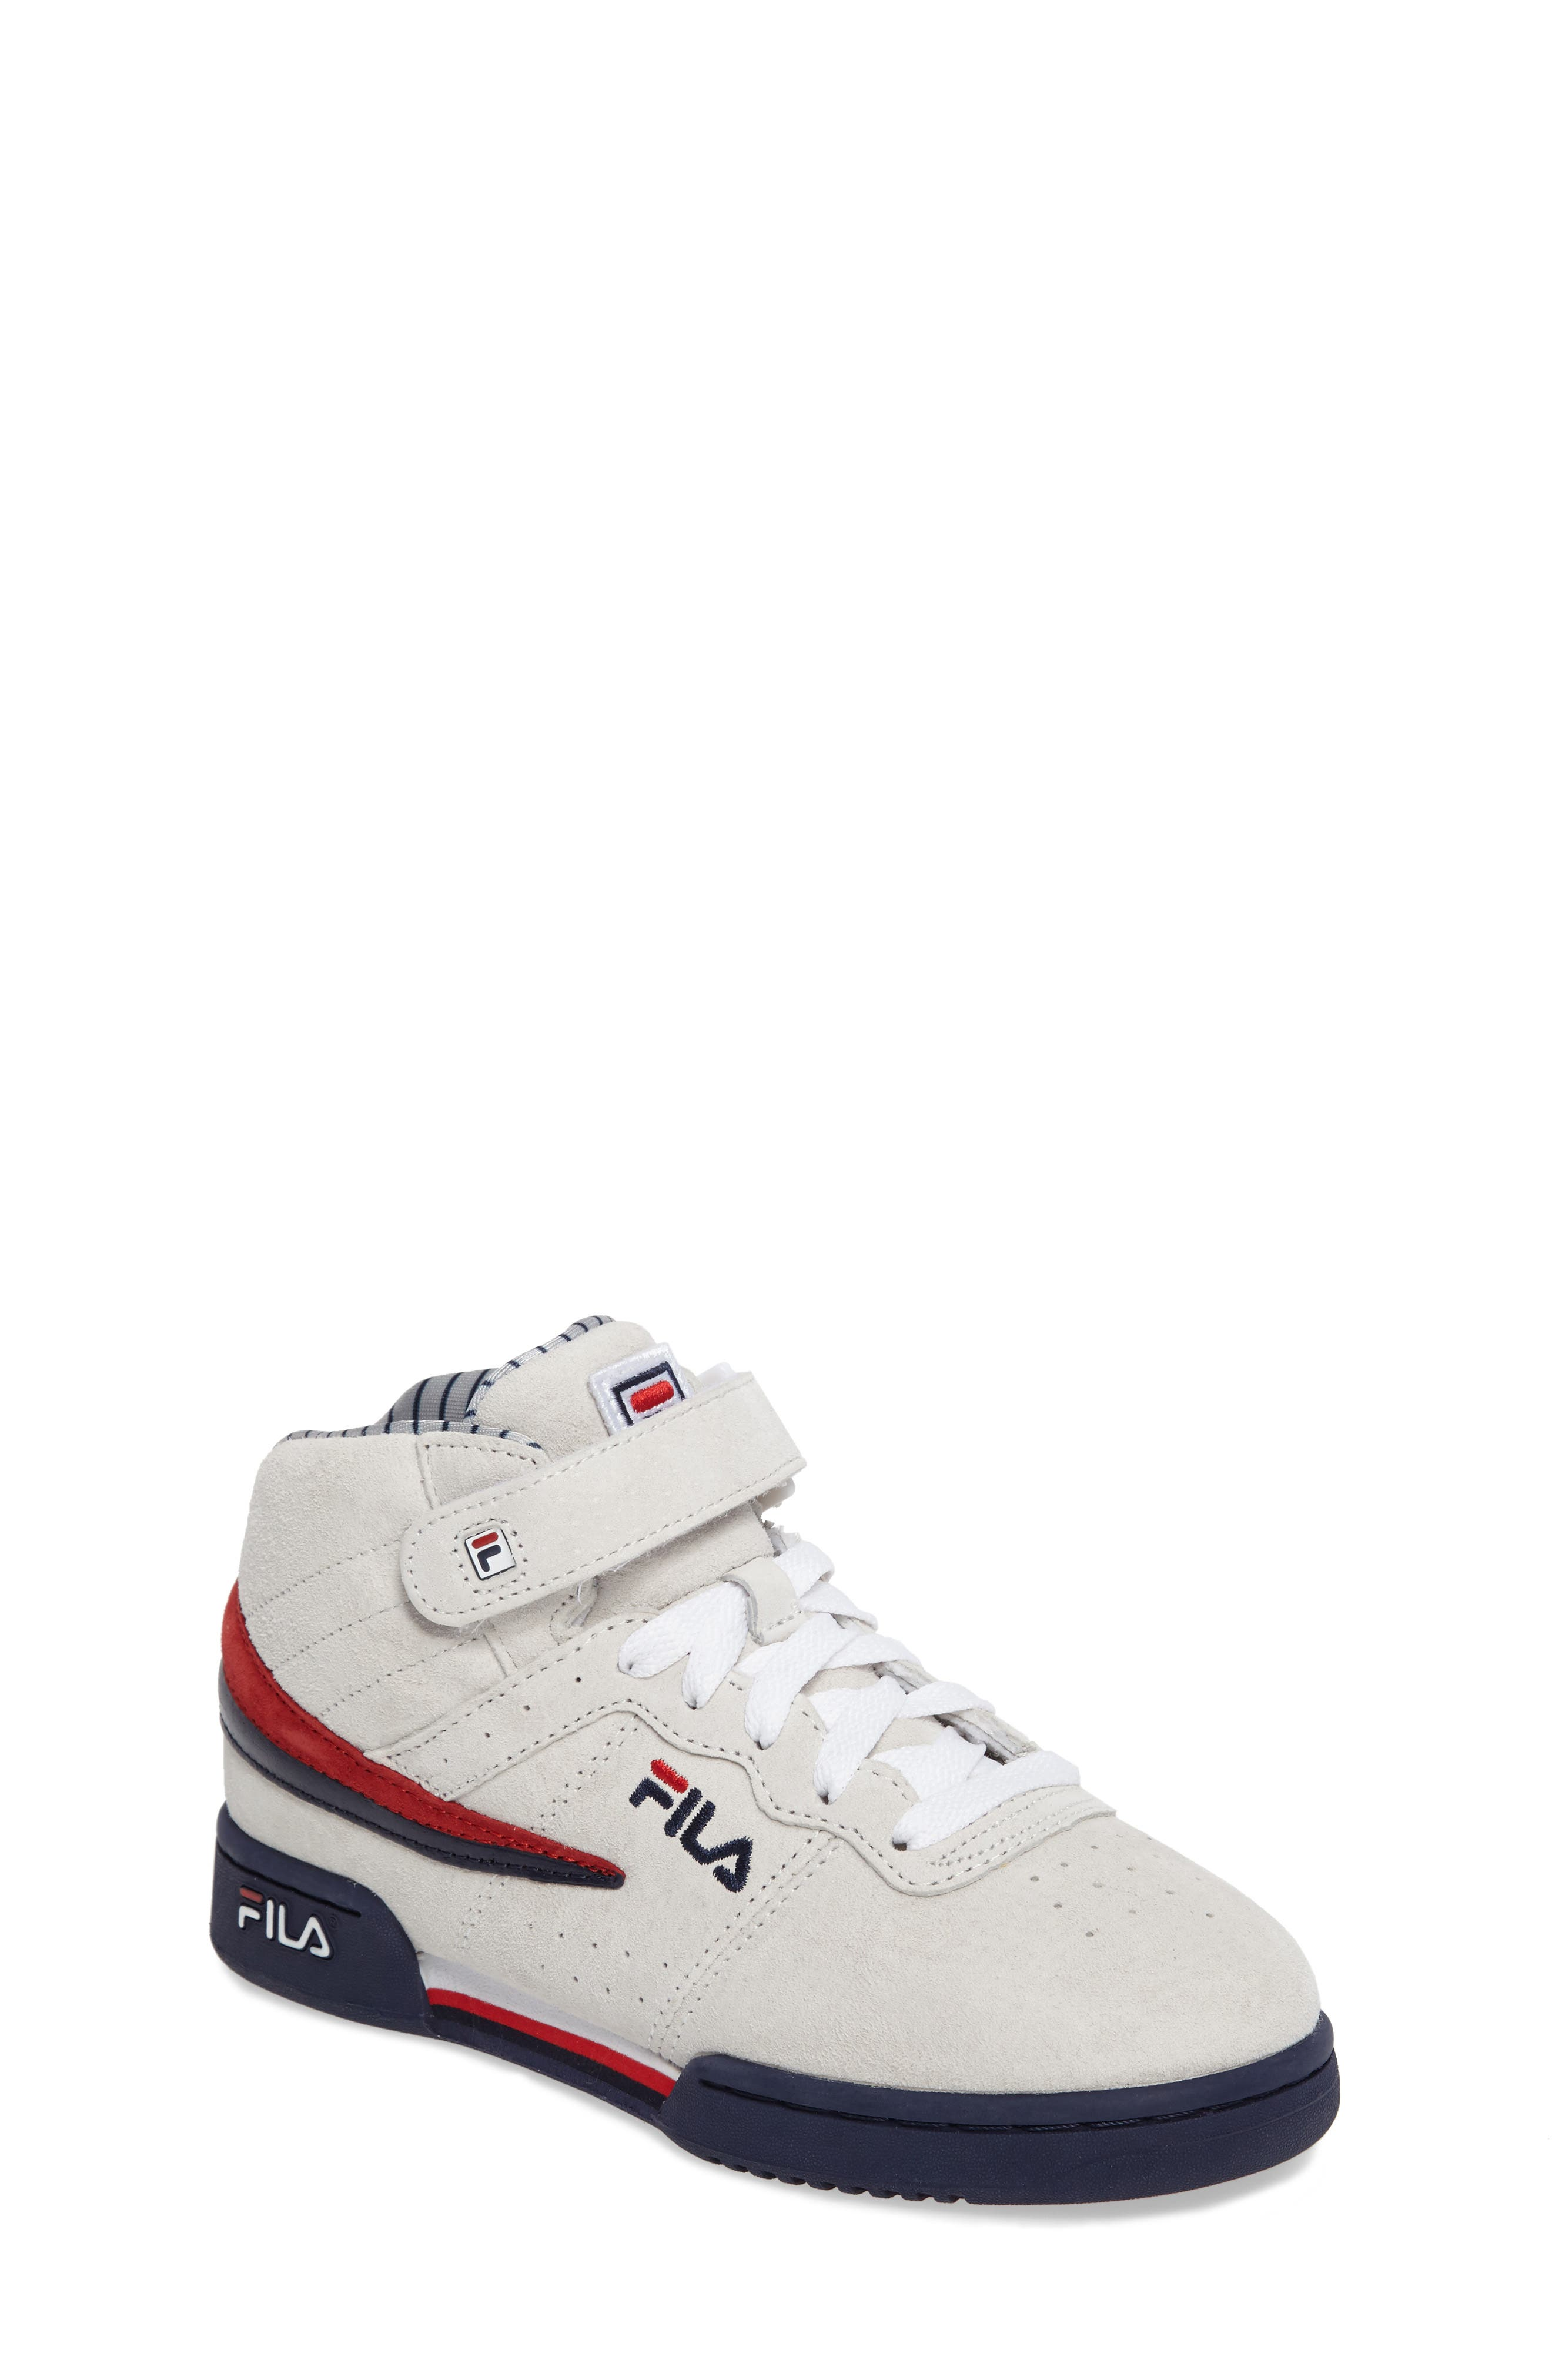 F-13 Mid Pinstripe Sneaker,                         Main,                         color, 150